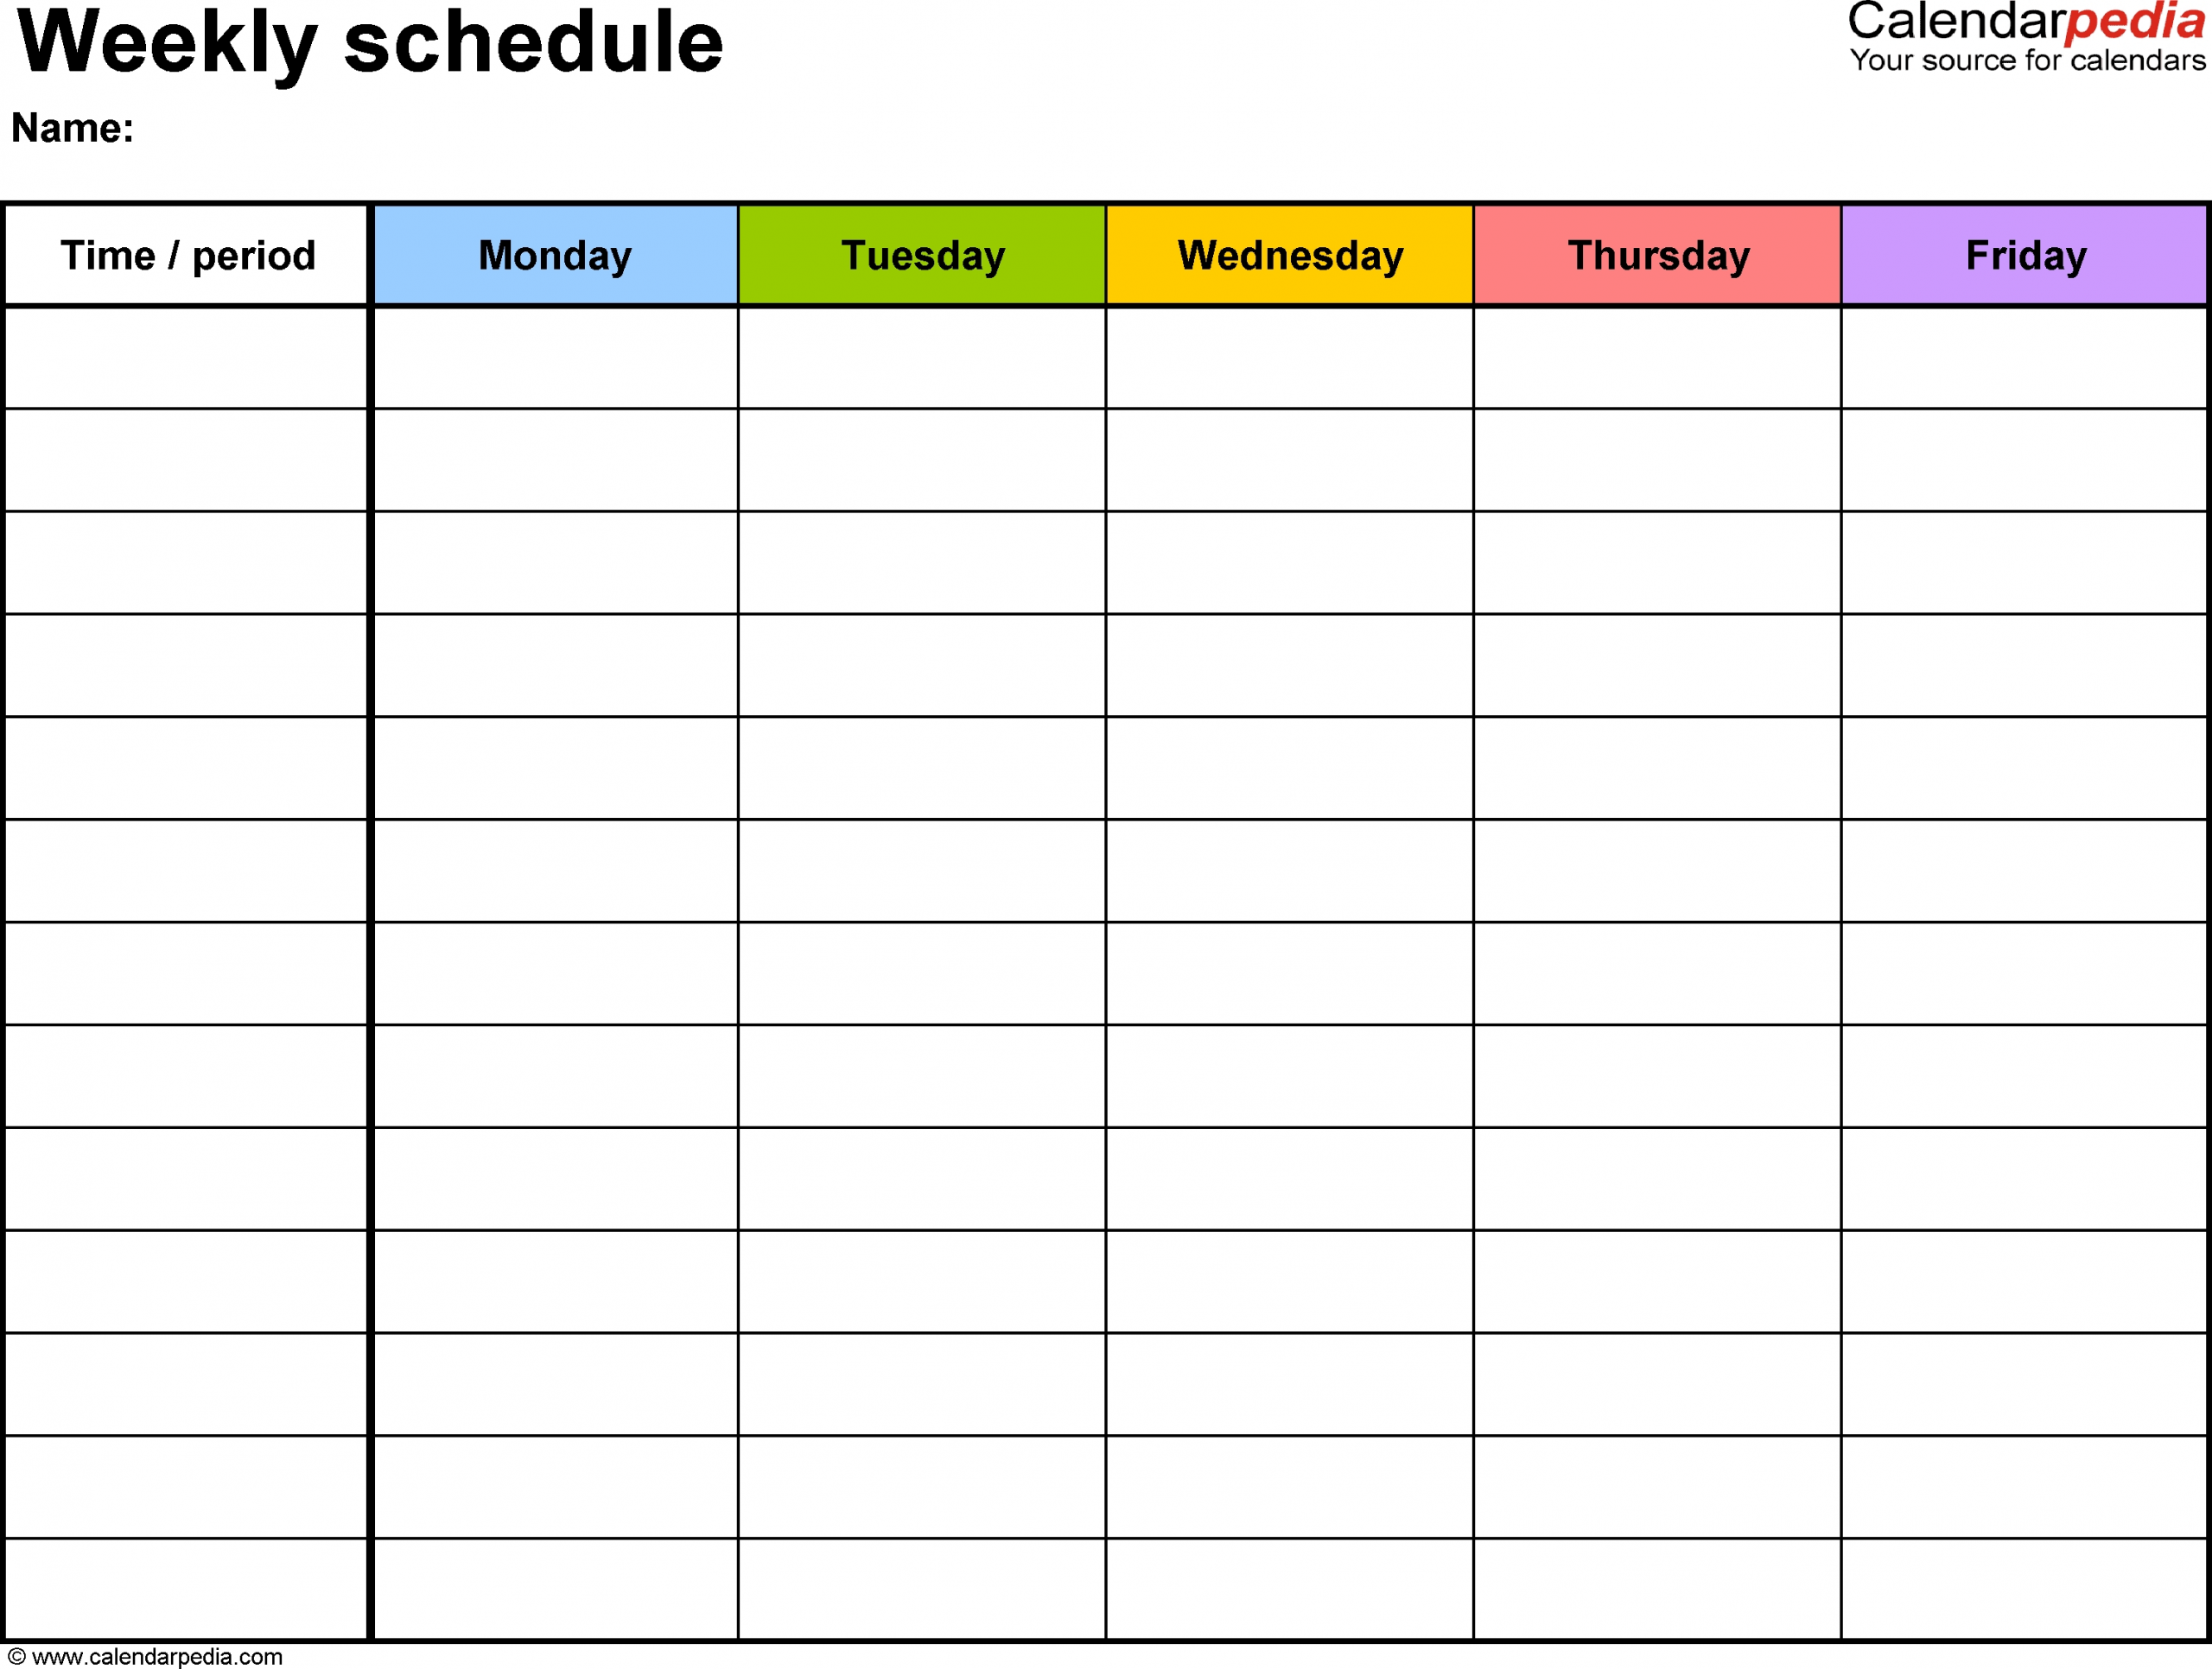 Pdf Daily Calendar With Time Slots - Calendar Inspiration Free Weekly Agenda Templates With Time Slots